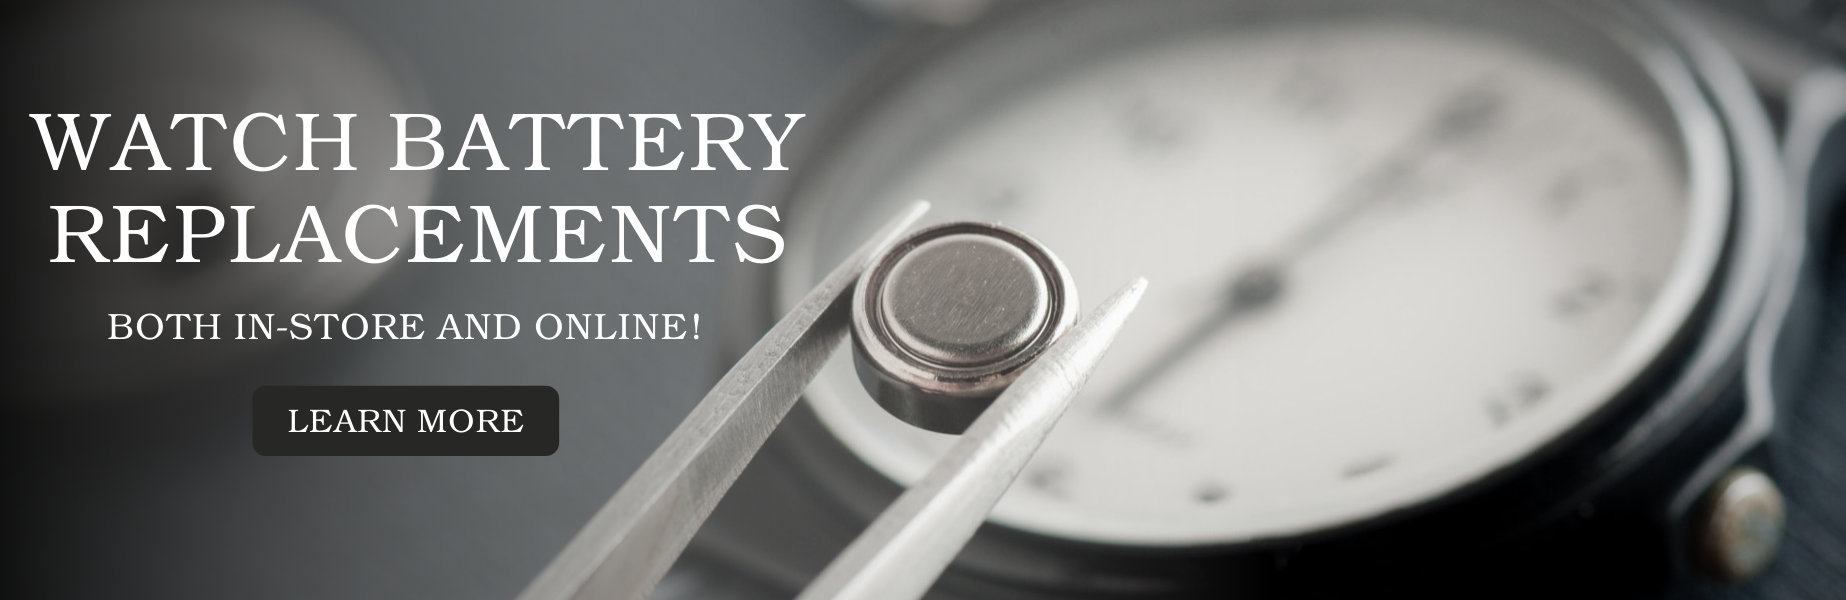 Watch Battery Replacements